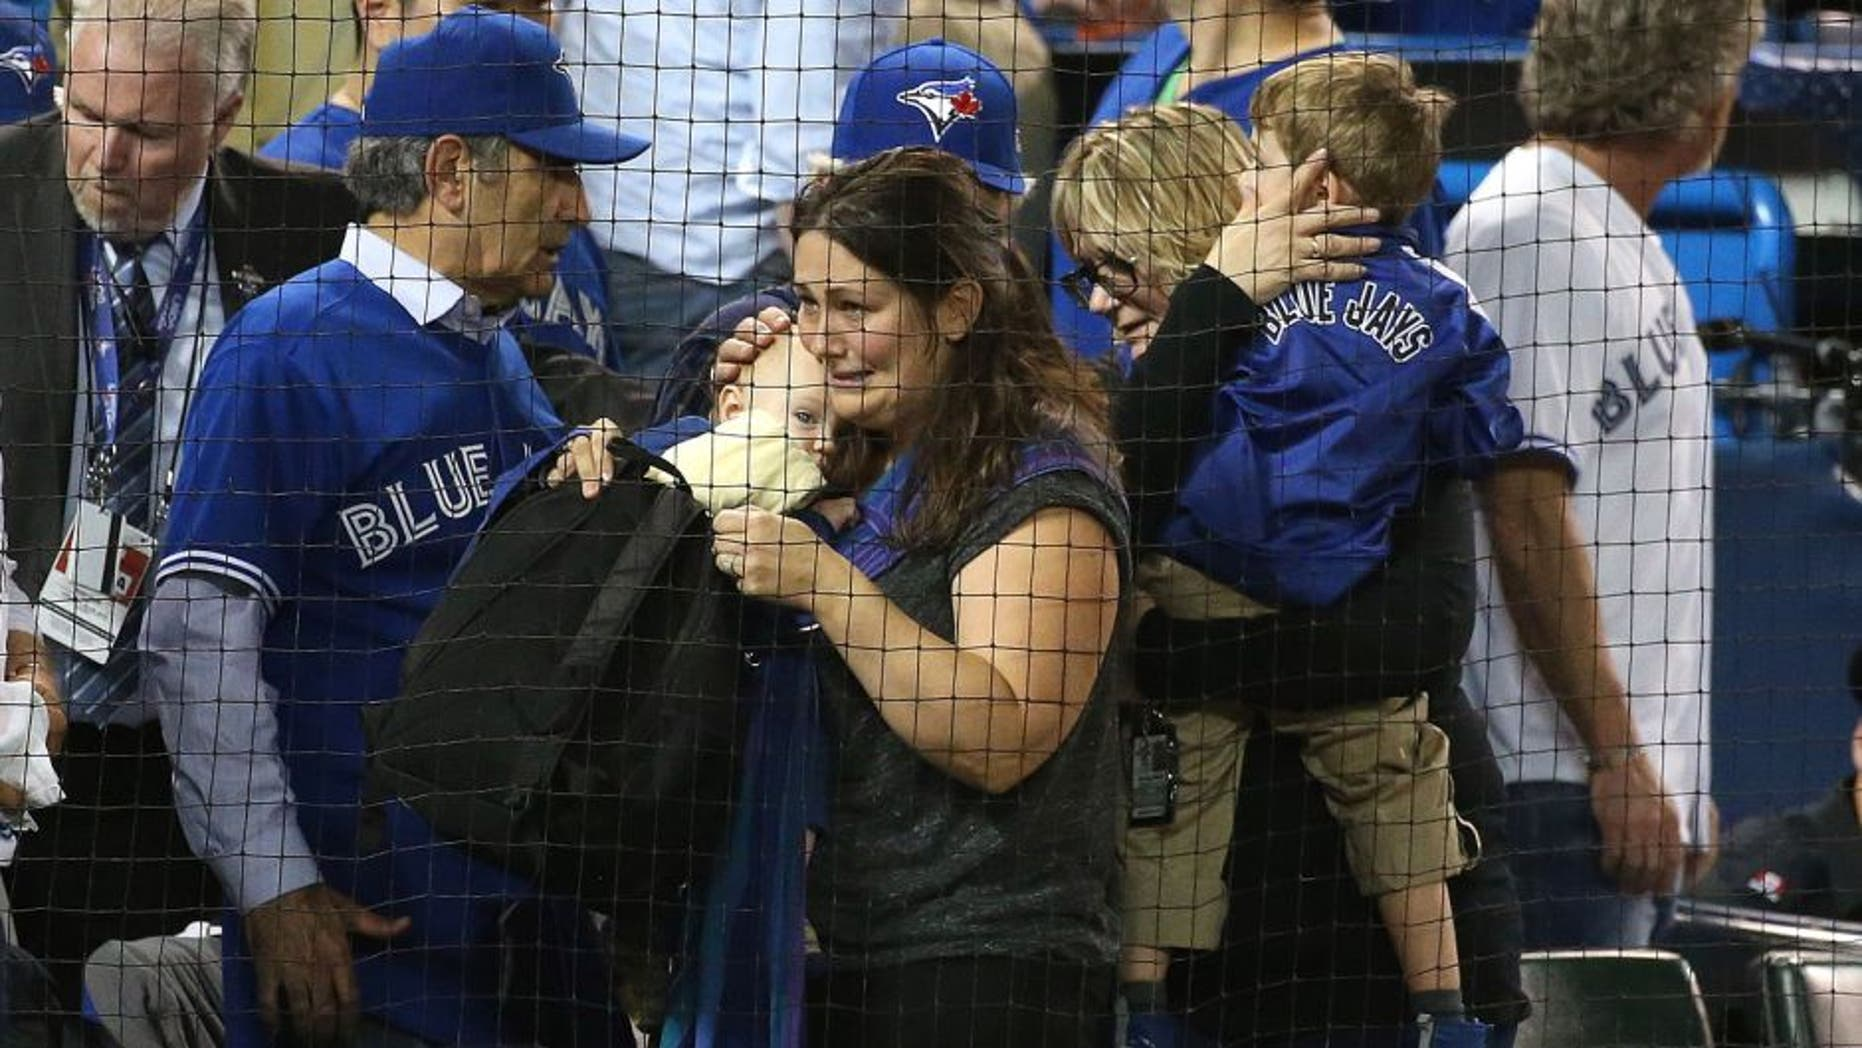 TORONTO, ON- OCTOBER 14: An infant was allegedly hit by a beer can during the protest. The Toronto Blue Jays and Texas Rangers play game four of the MLB American League Division Series . at Rogers Centre in Toronto. October 14, 2015. (Steve Russell/Toronto Star via Getty Images)